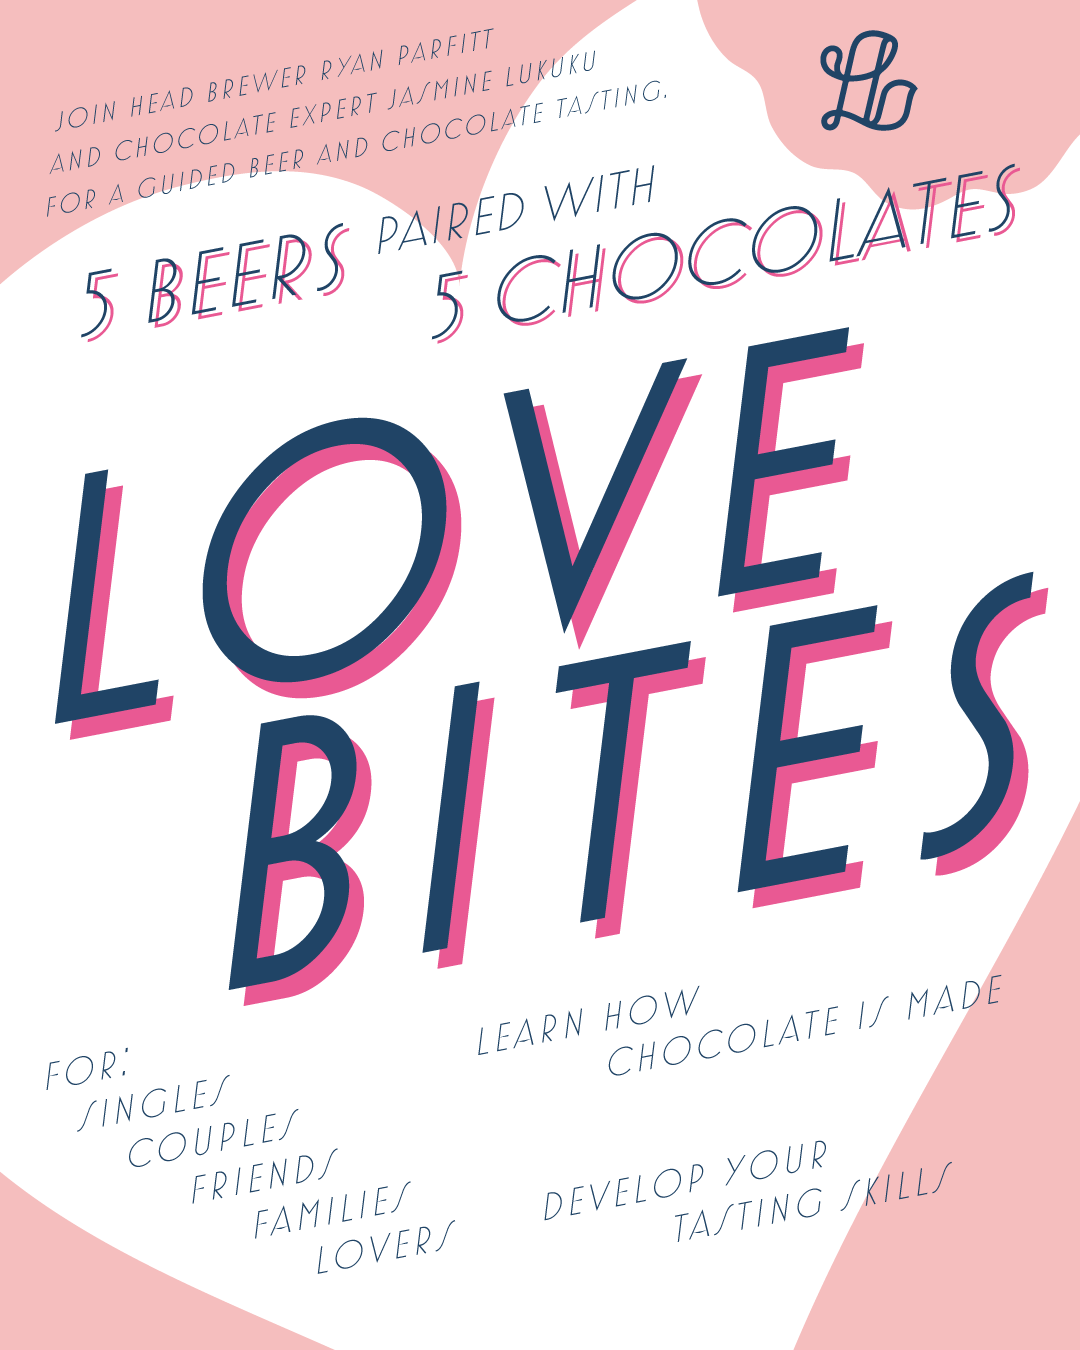 Love Bites: Beer & Chocolate Pairing